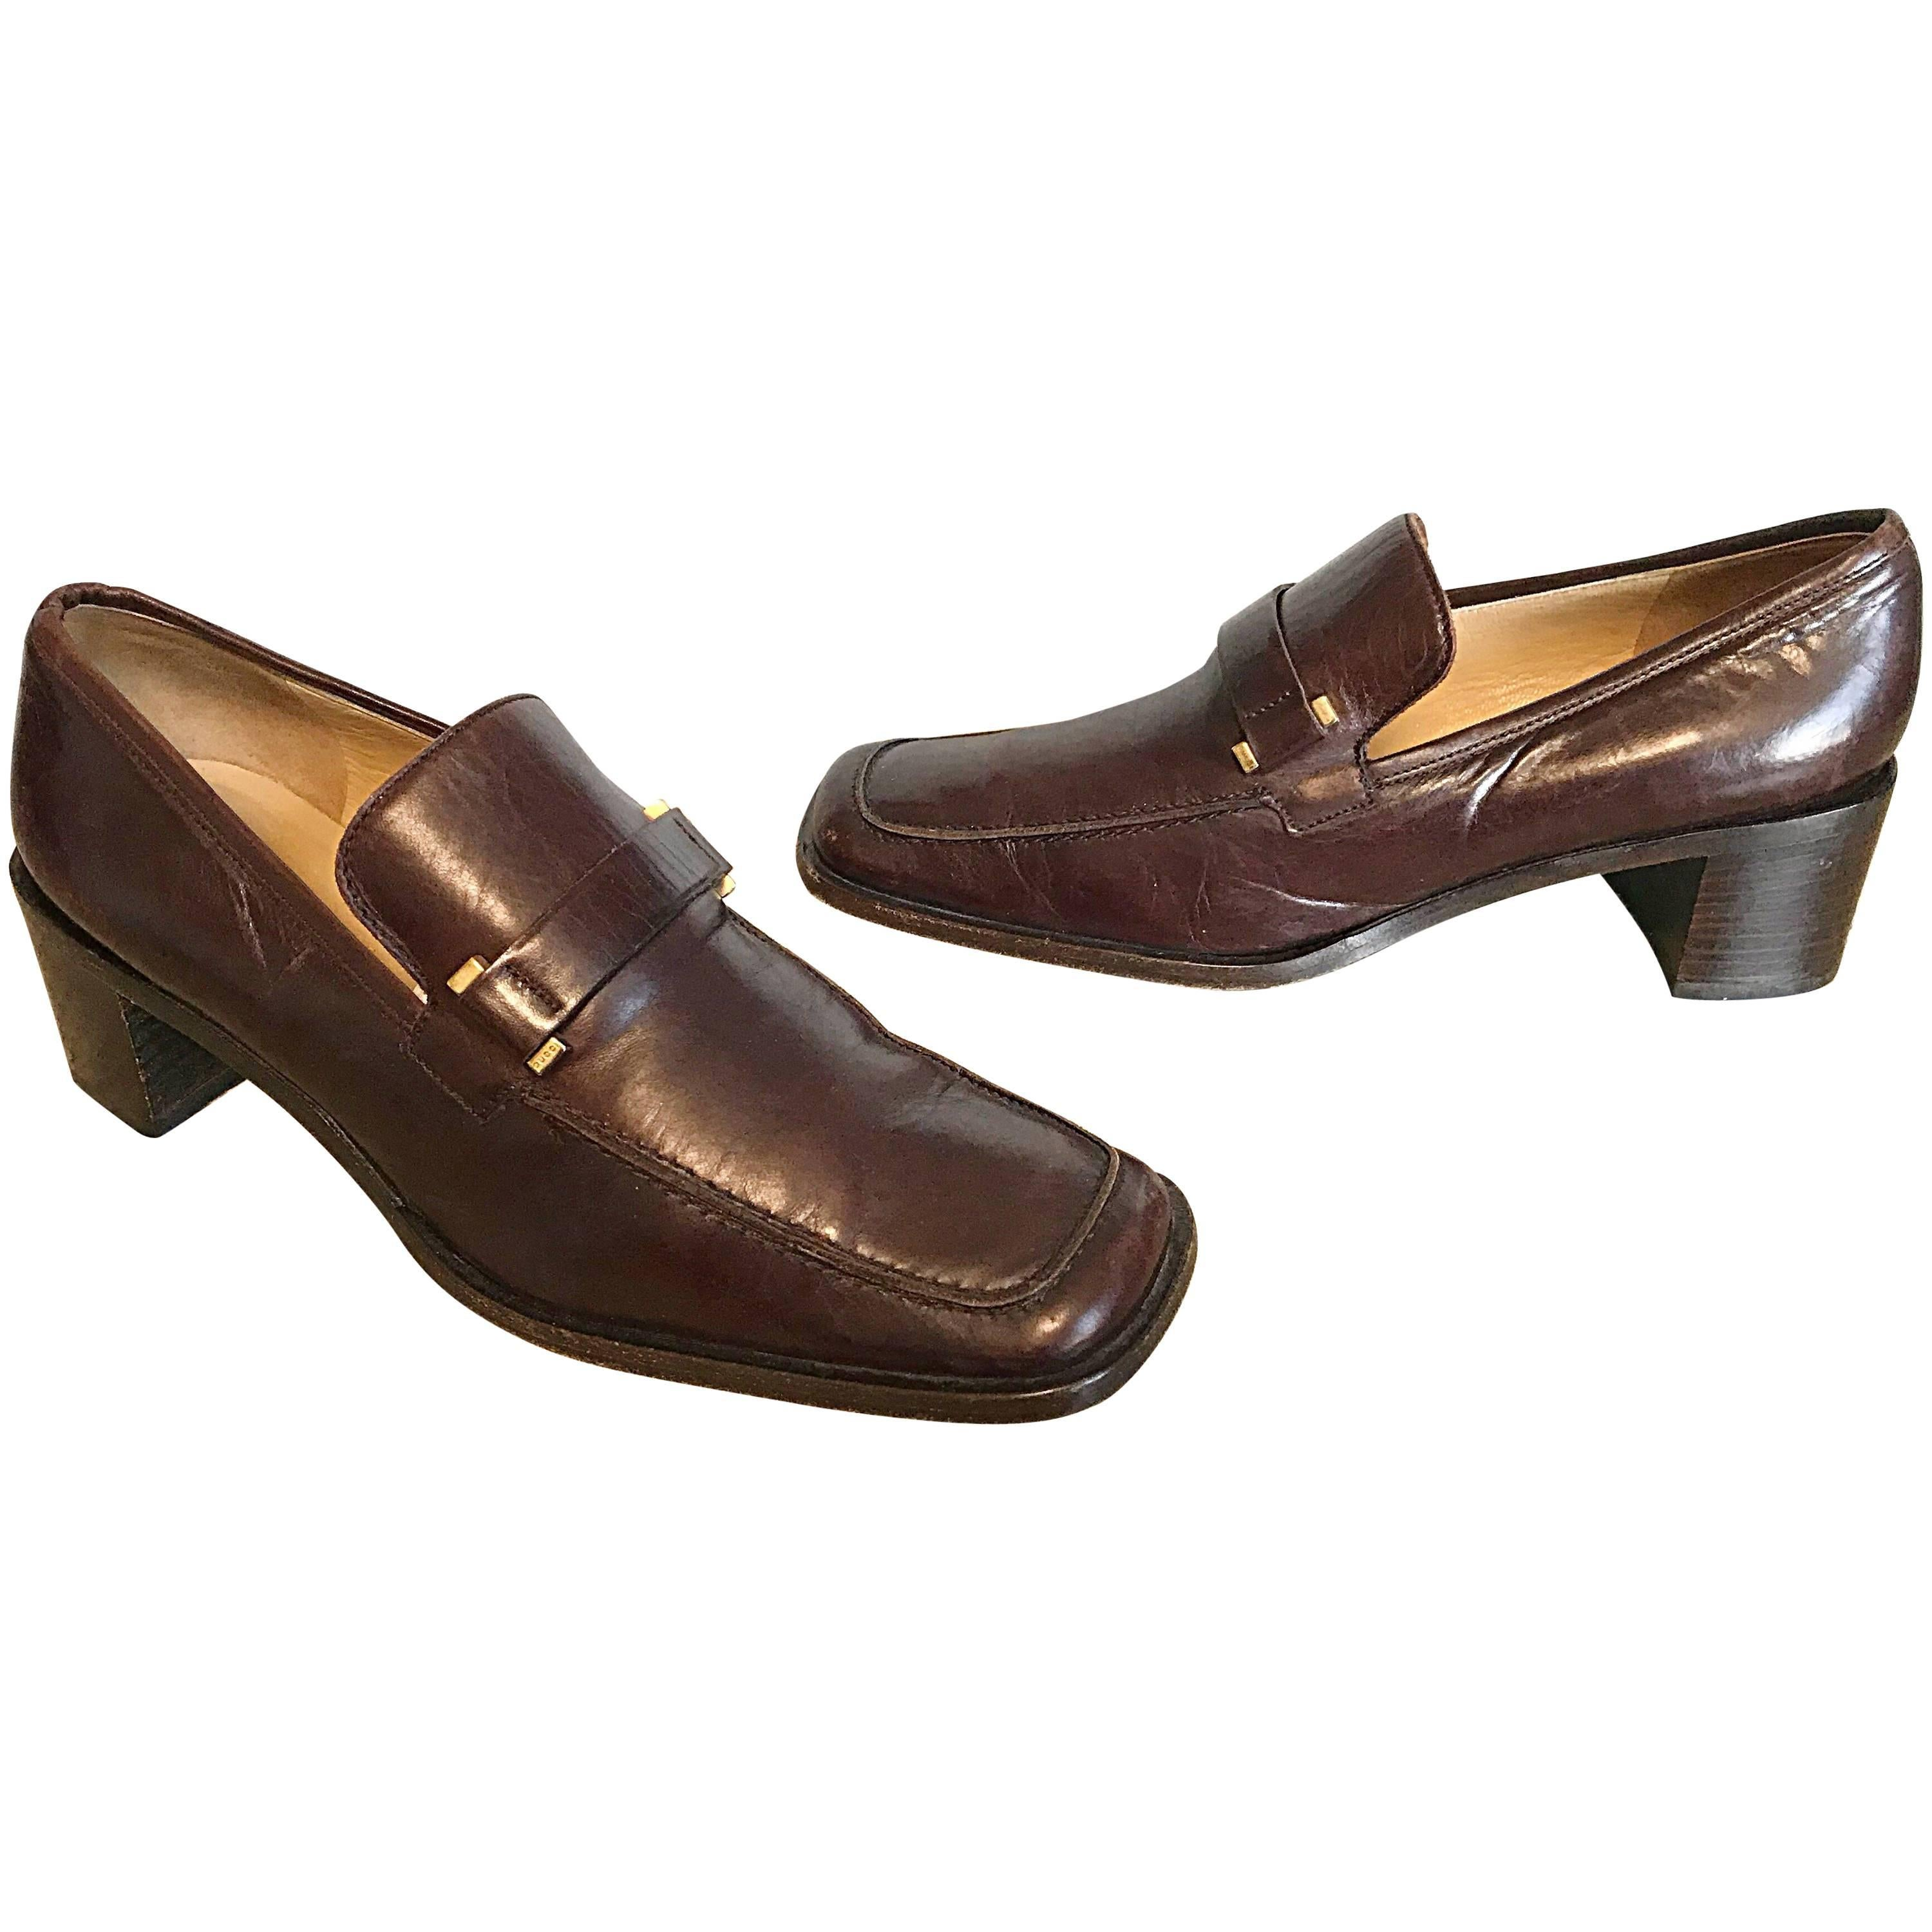 Gucci by Tom Ford Size 6 / 36 1990s Chocolate Brown Stacked Heel Loafers Shoes